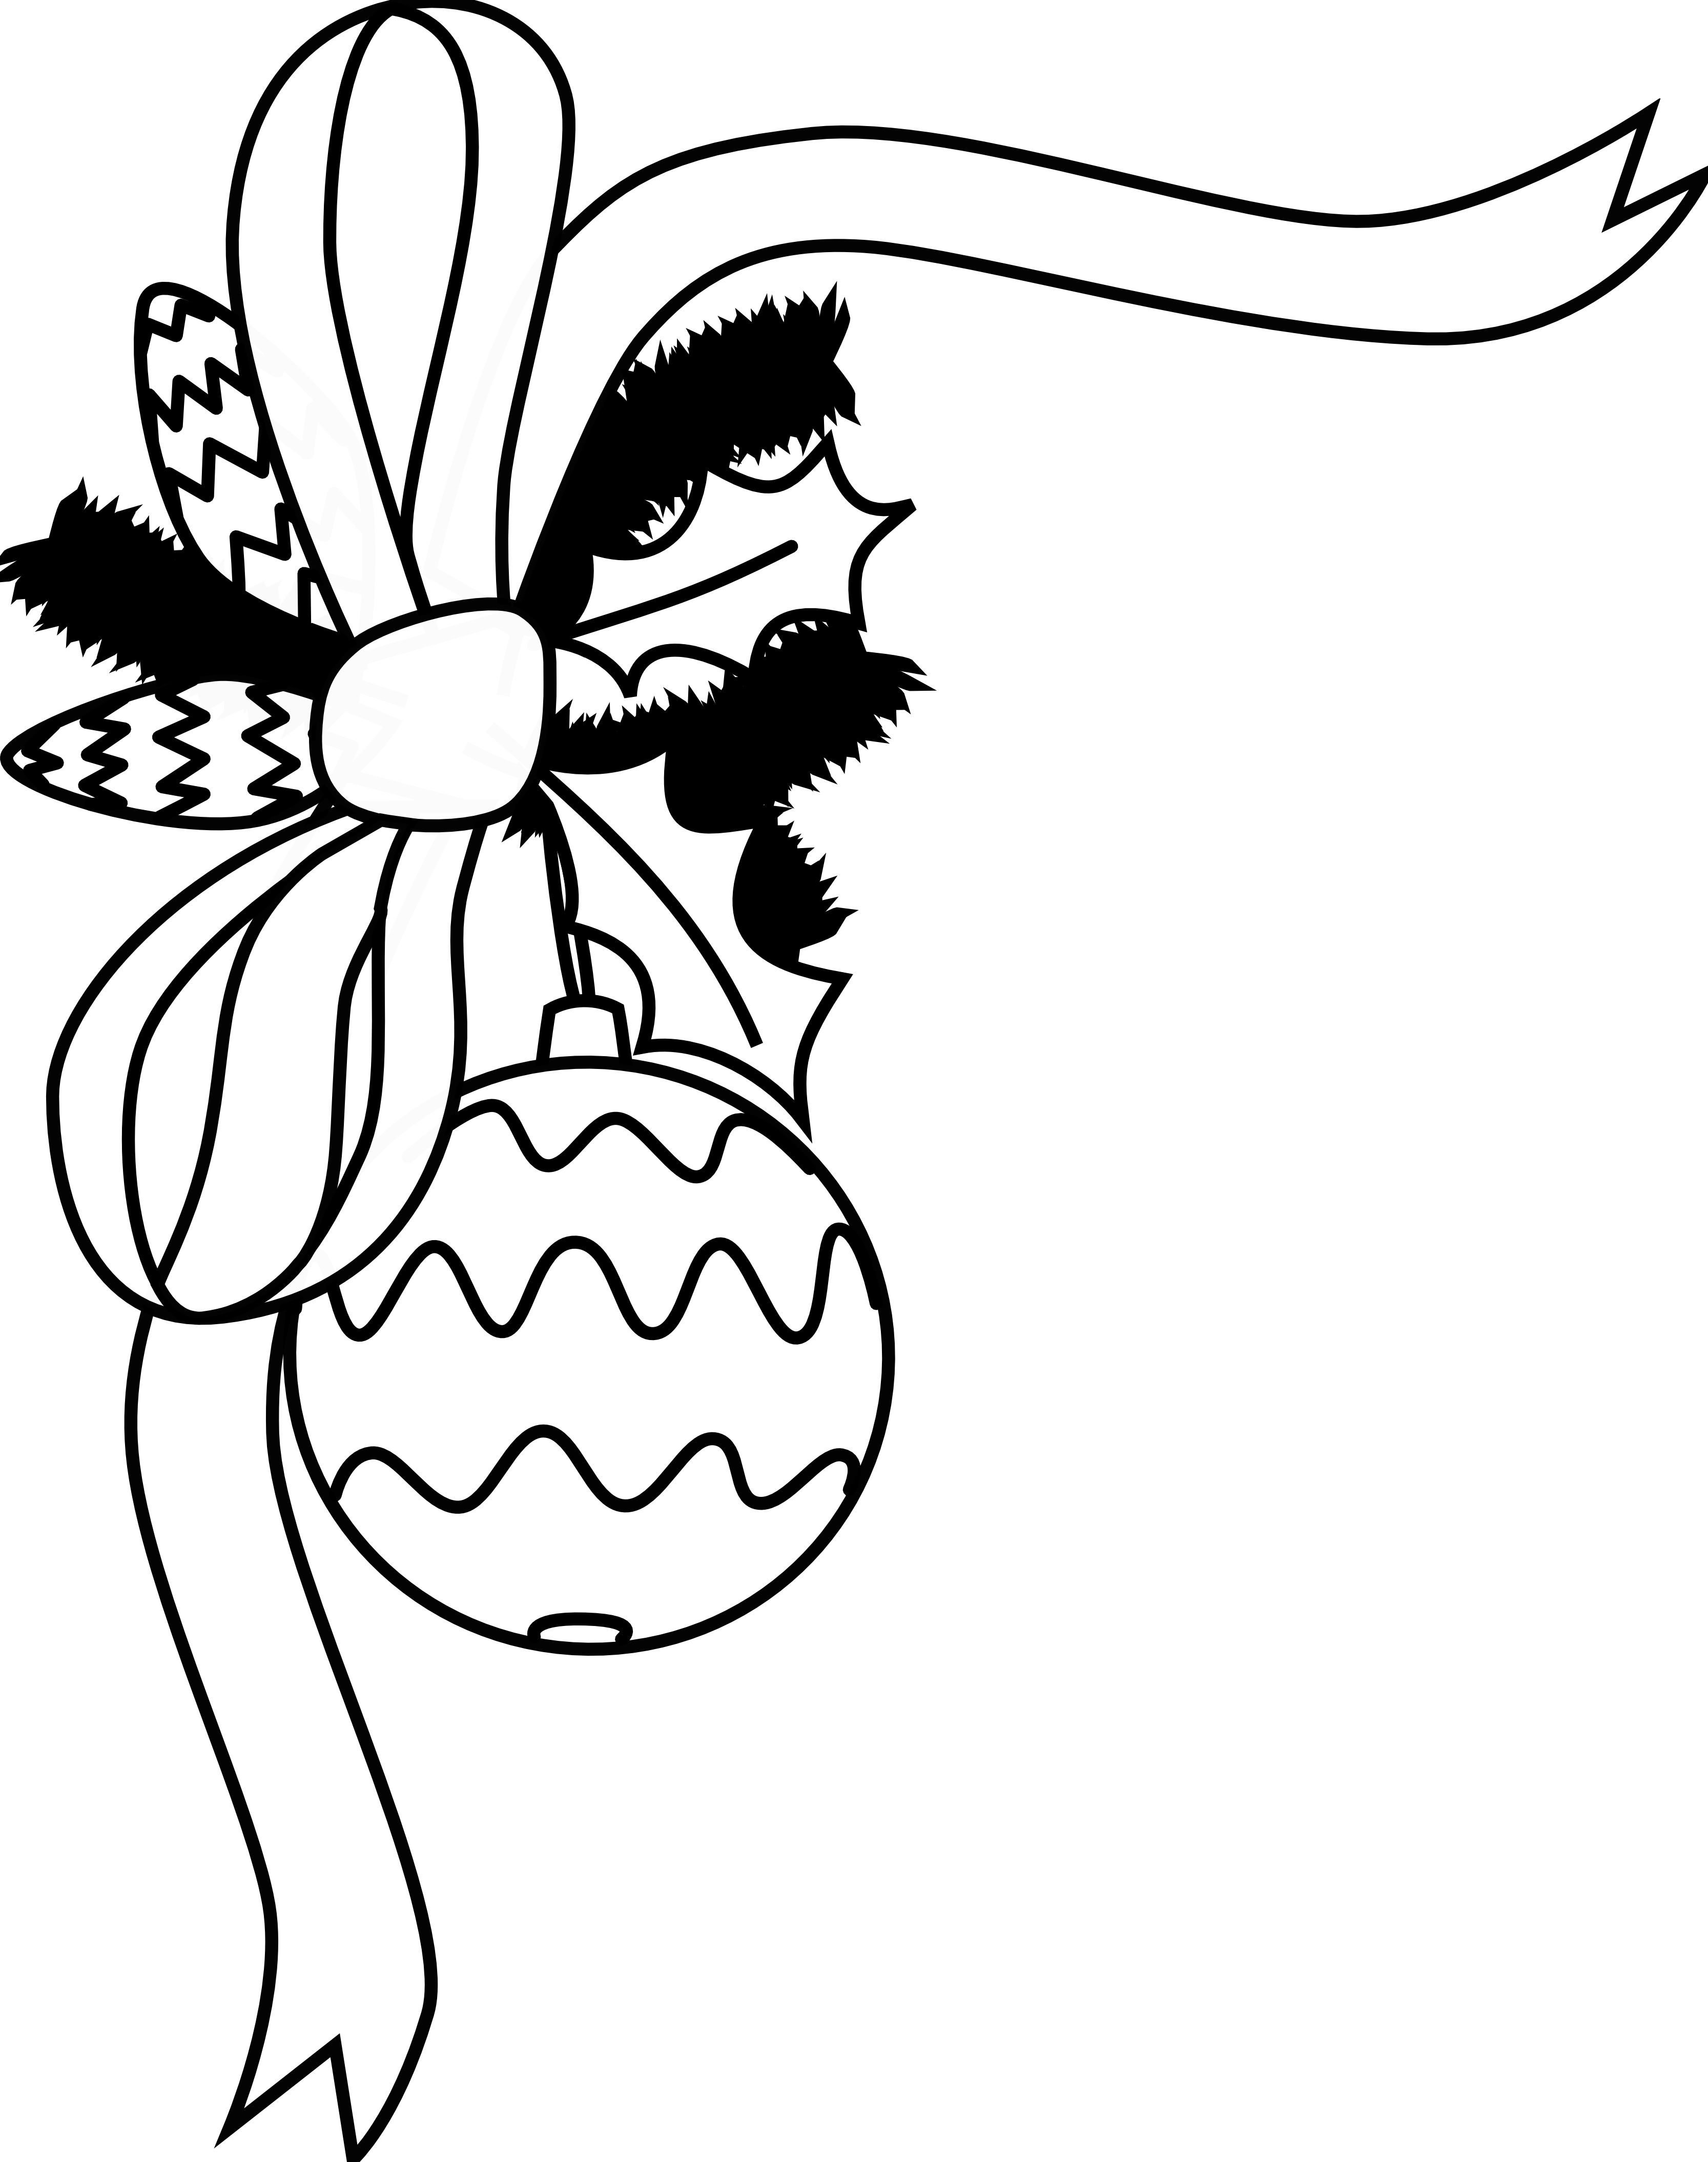 jpg black and white download Apron clipart black and white. Stick of butter panda